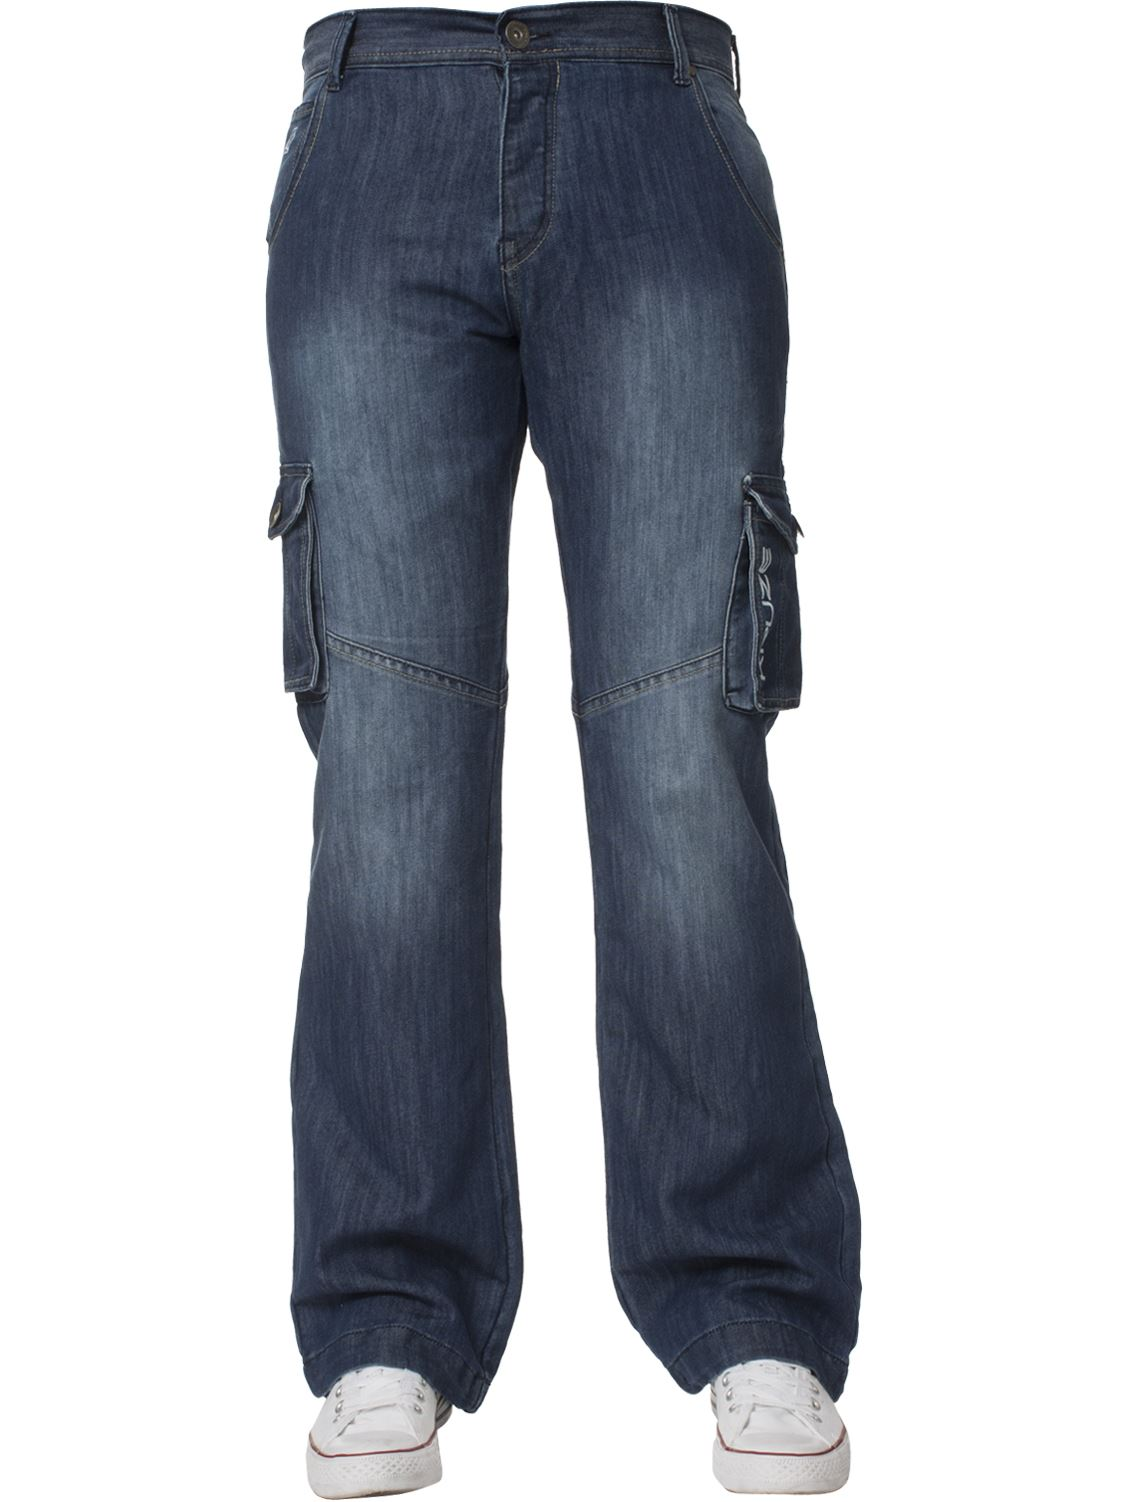 Mens-Cargo-Jeans-Combat-Trousers-Heavy-Duty-Work-Casual-Big-Tall-Denim-Pants thumbnail 57